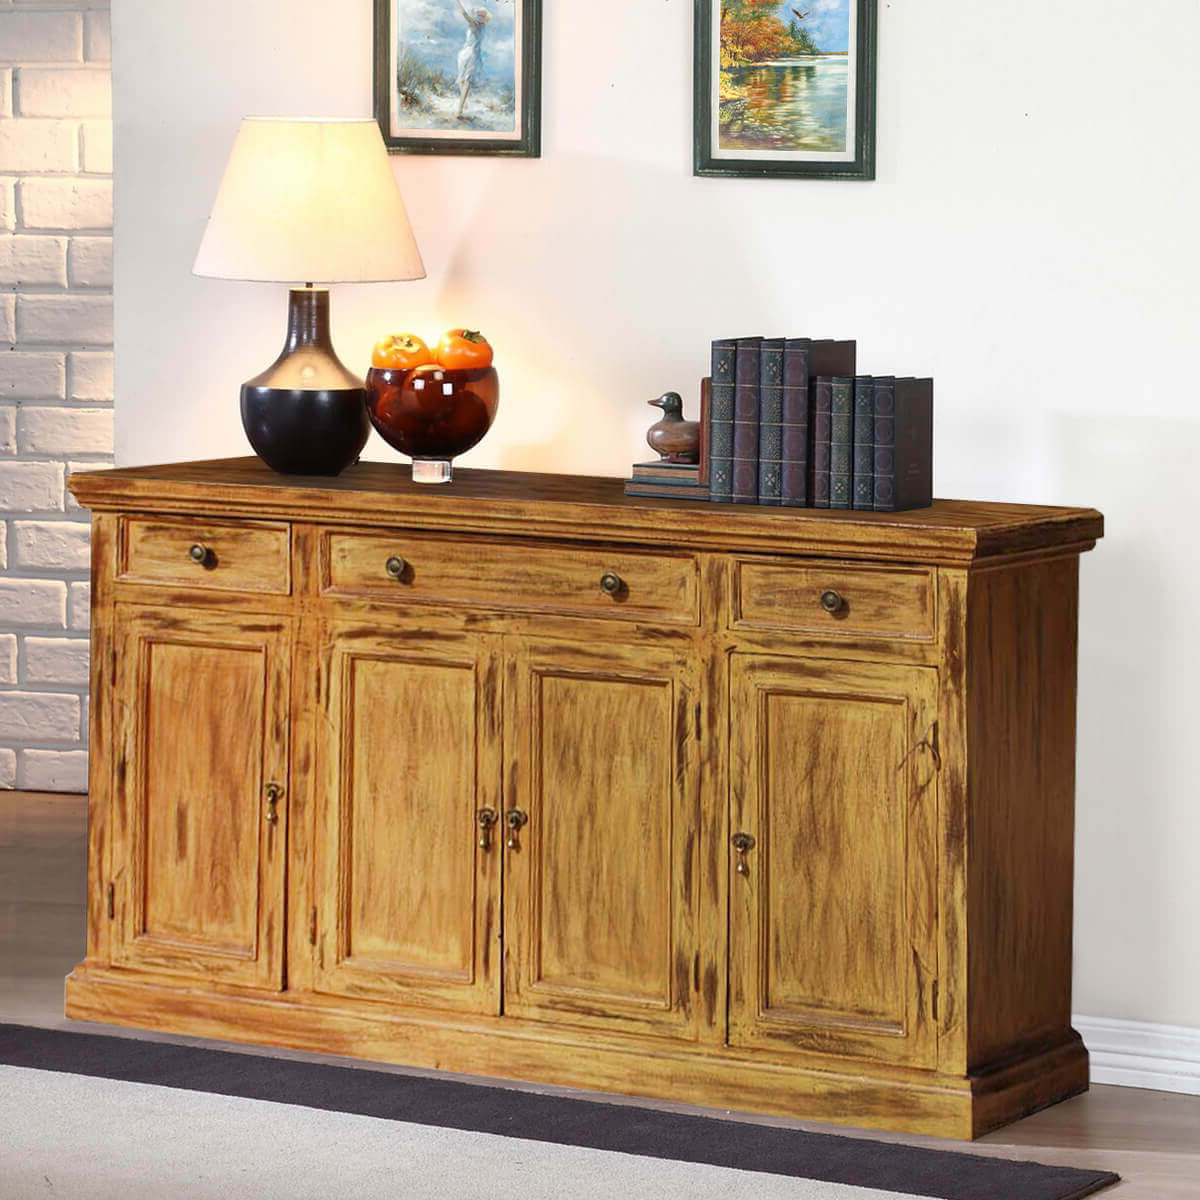 Courtdale Rustic Solid Wood 4 Door 3 Drawer Large Pertaining To Courtdale Sideboards (View 5 of 20)